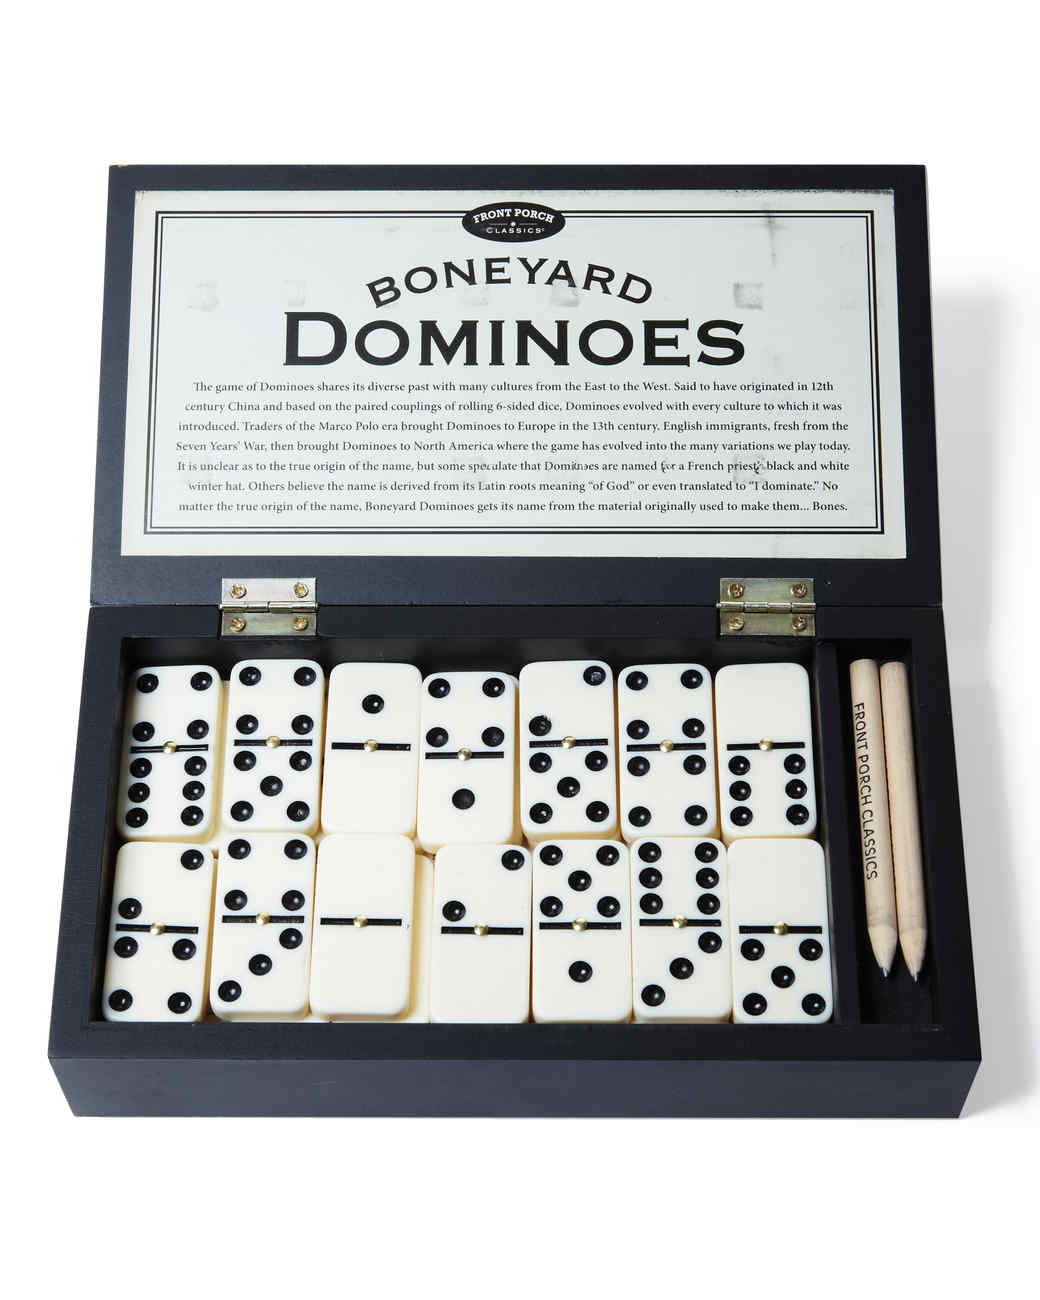 games-dominoes-0811mld107420.jpg